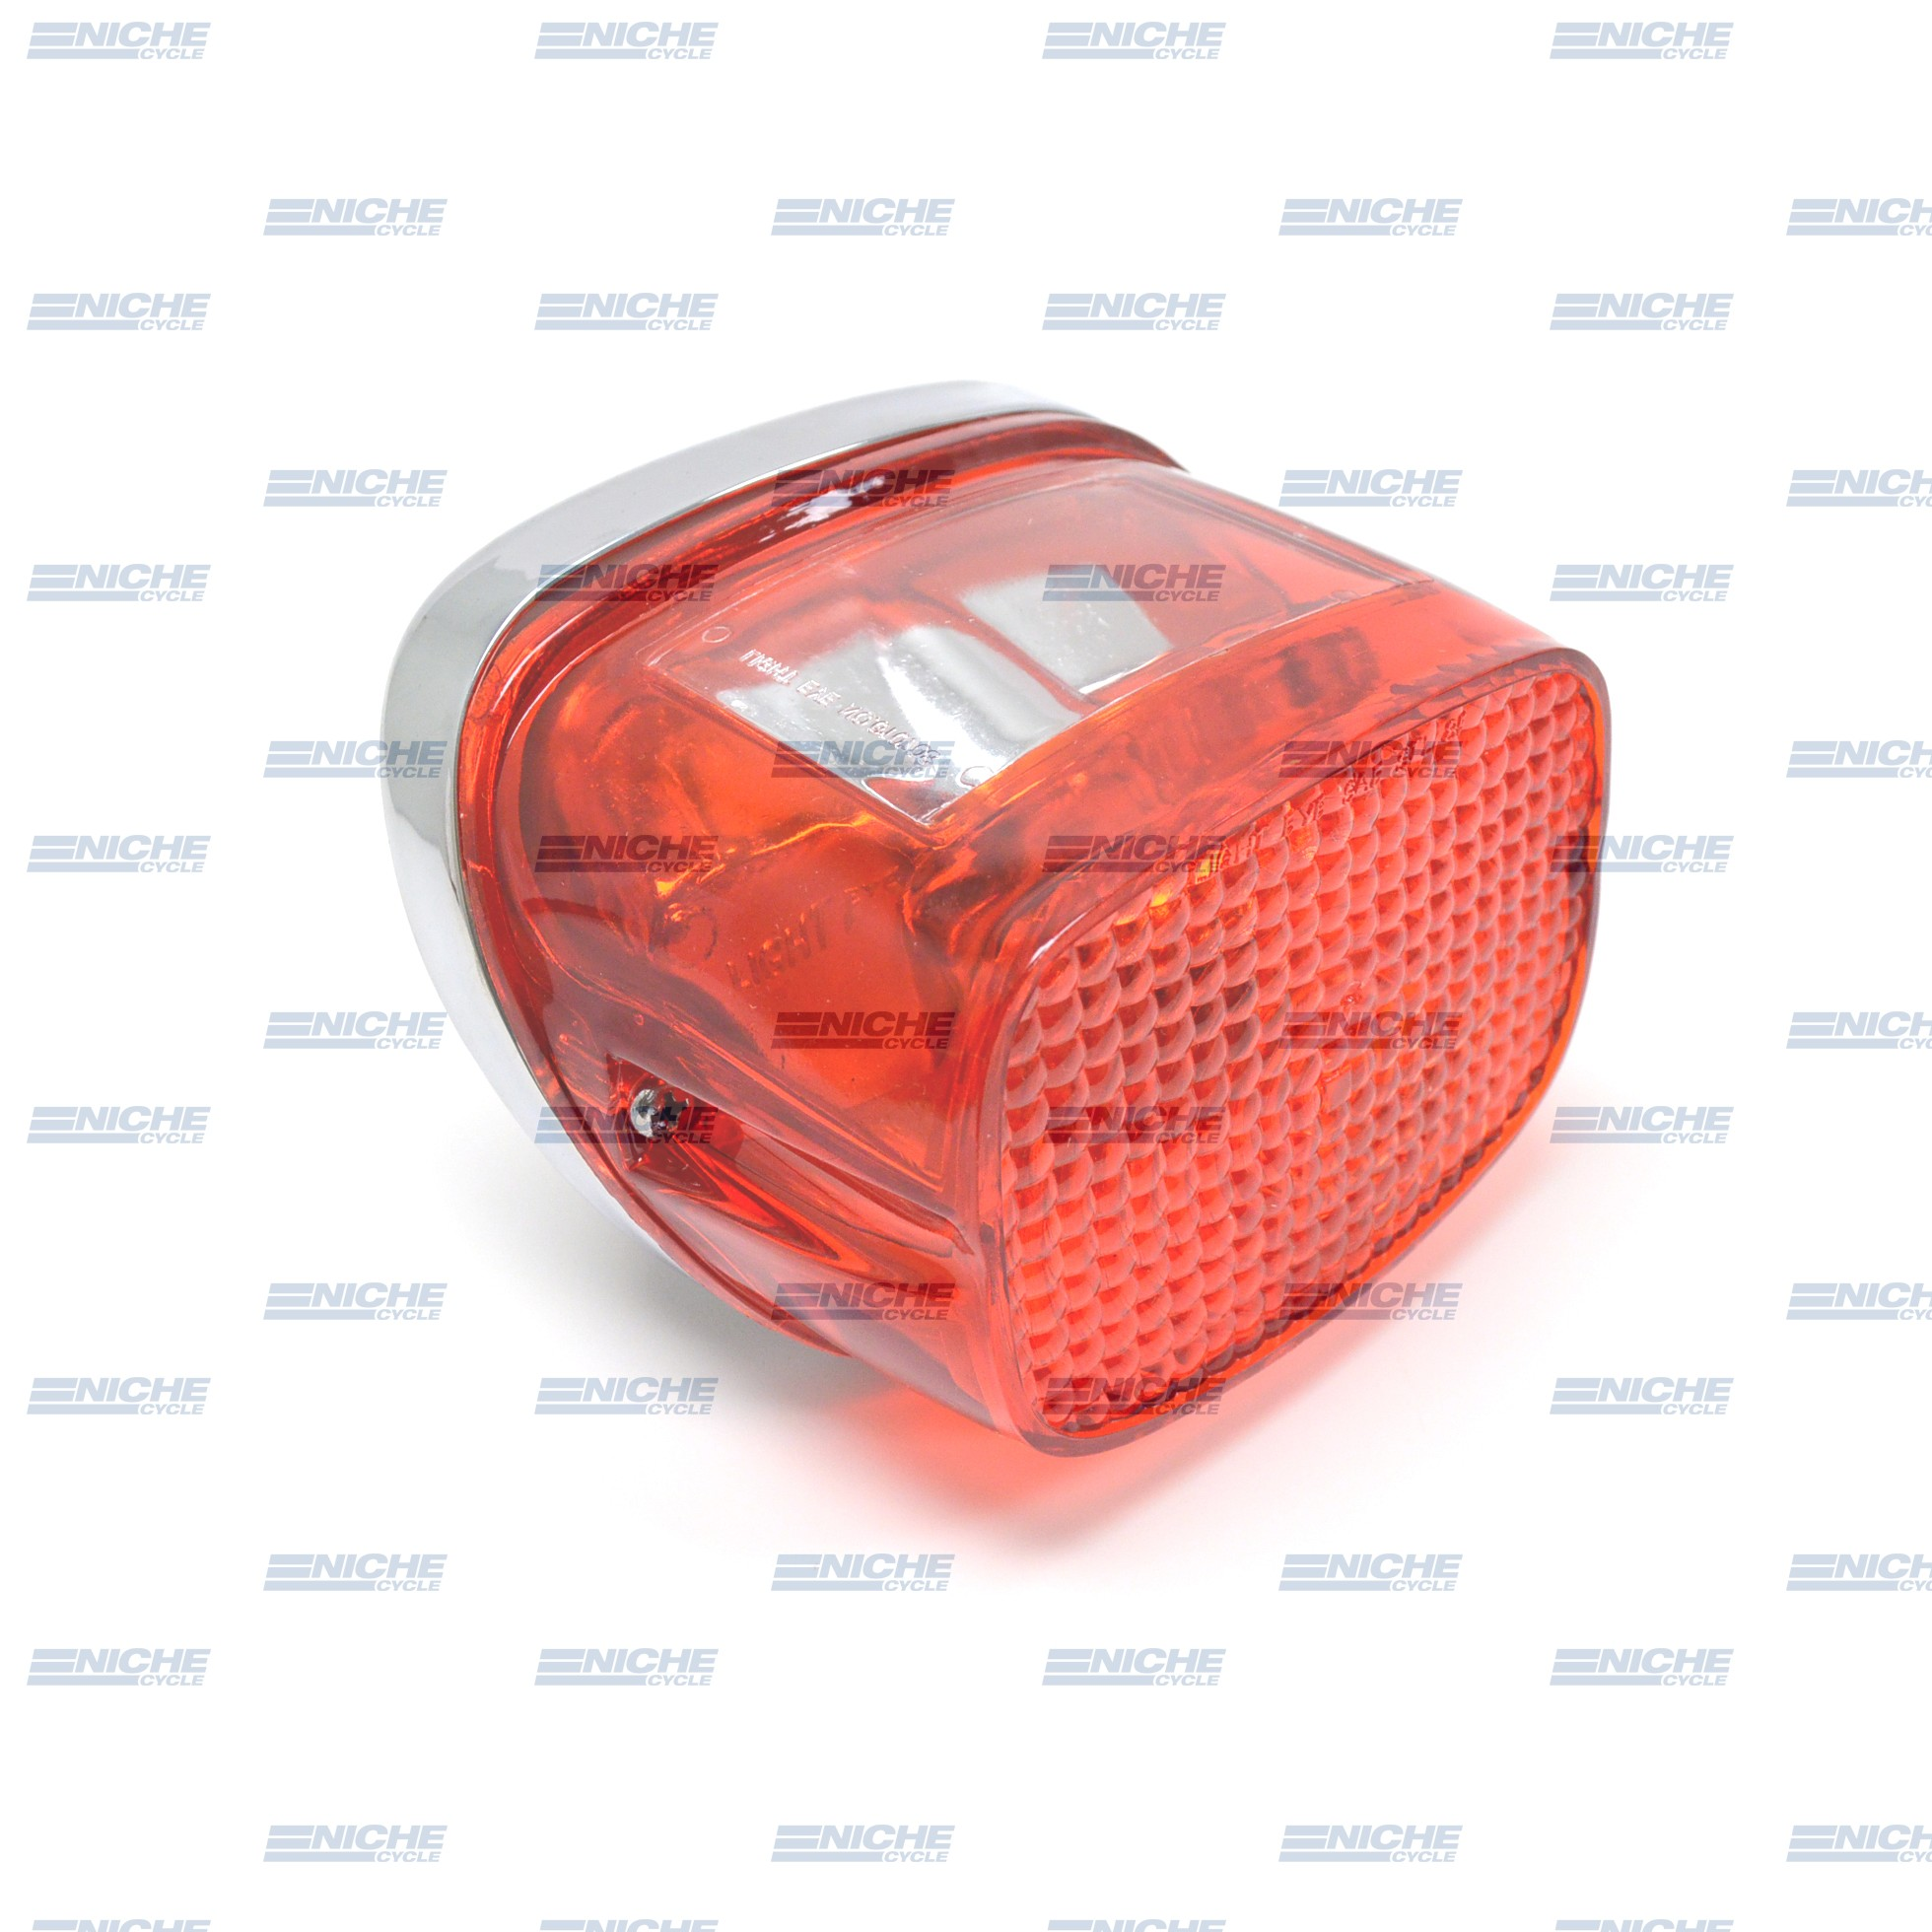 Harley Davidson 73-98 XL Big Twin Tail Lamp 68008-73A  07-46800